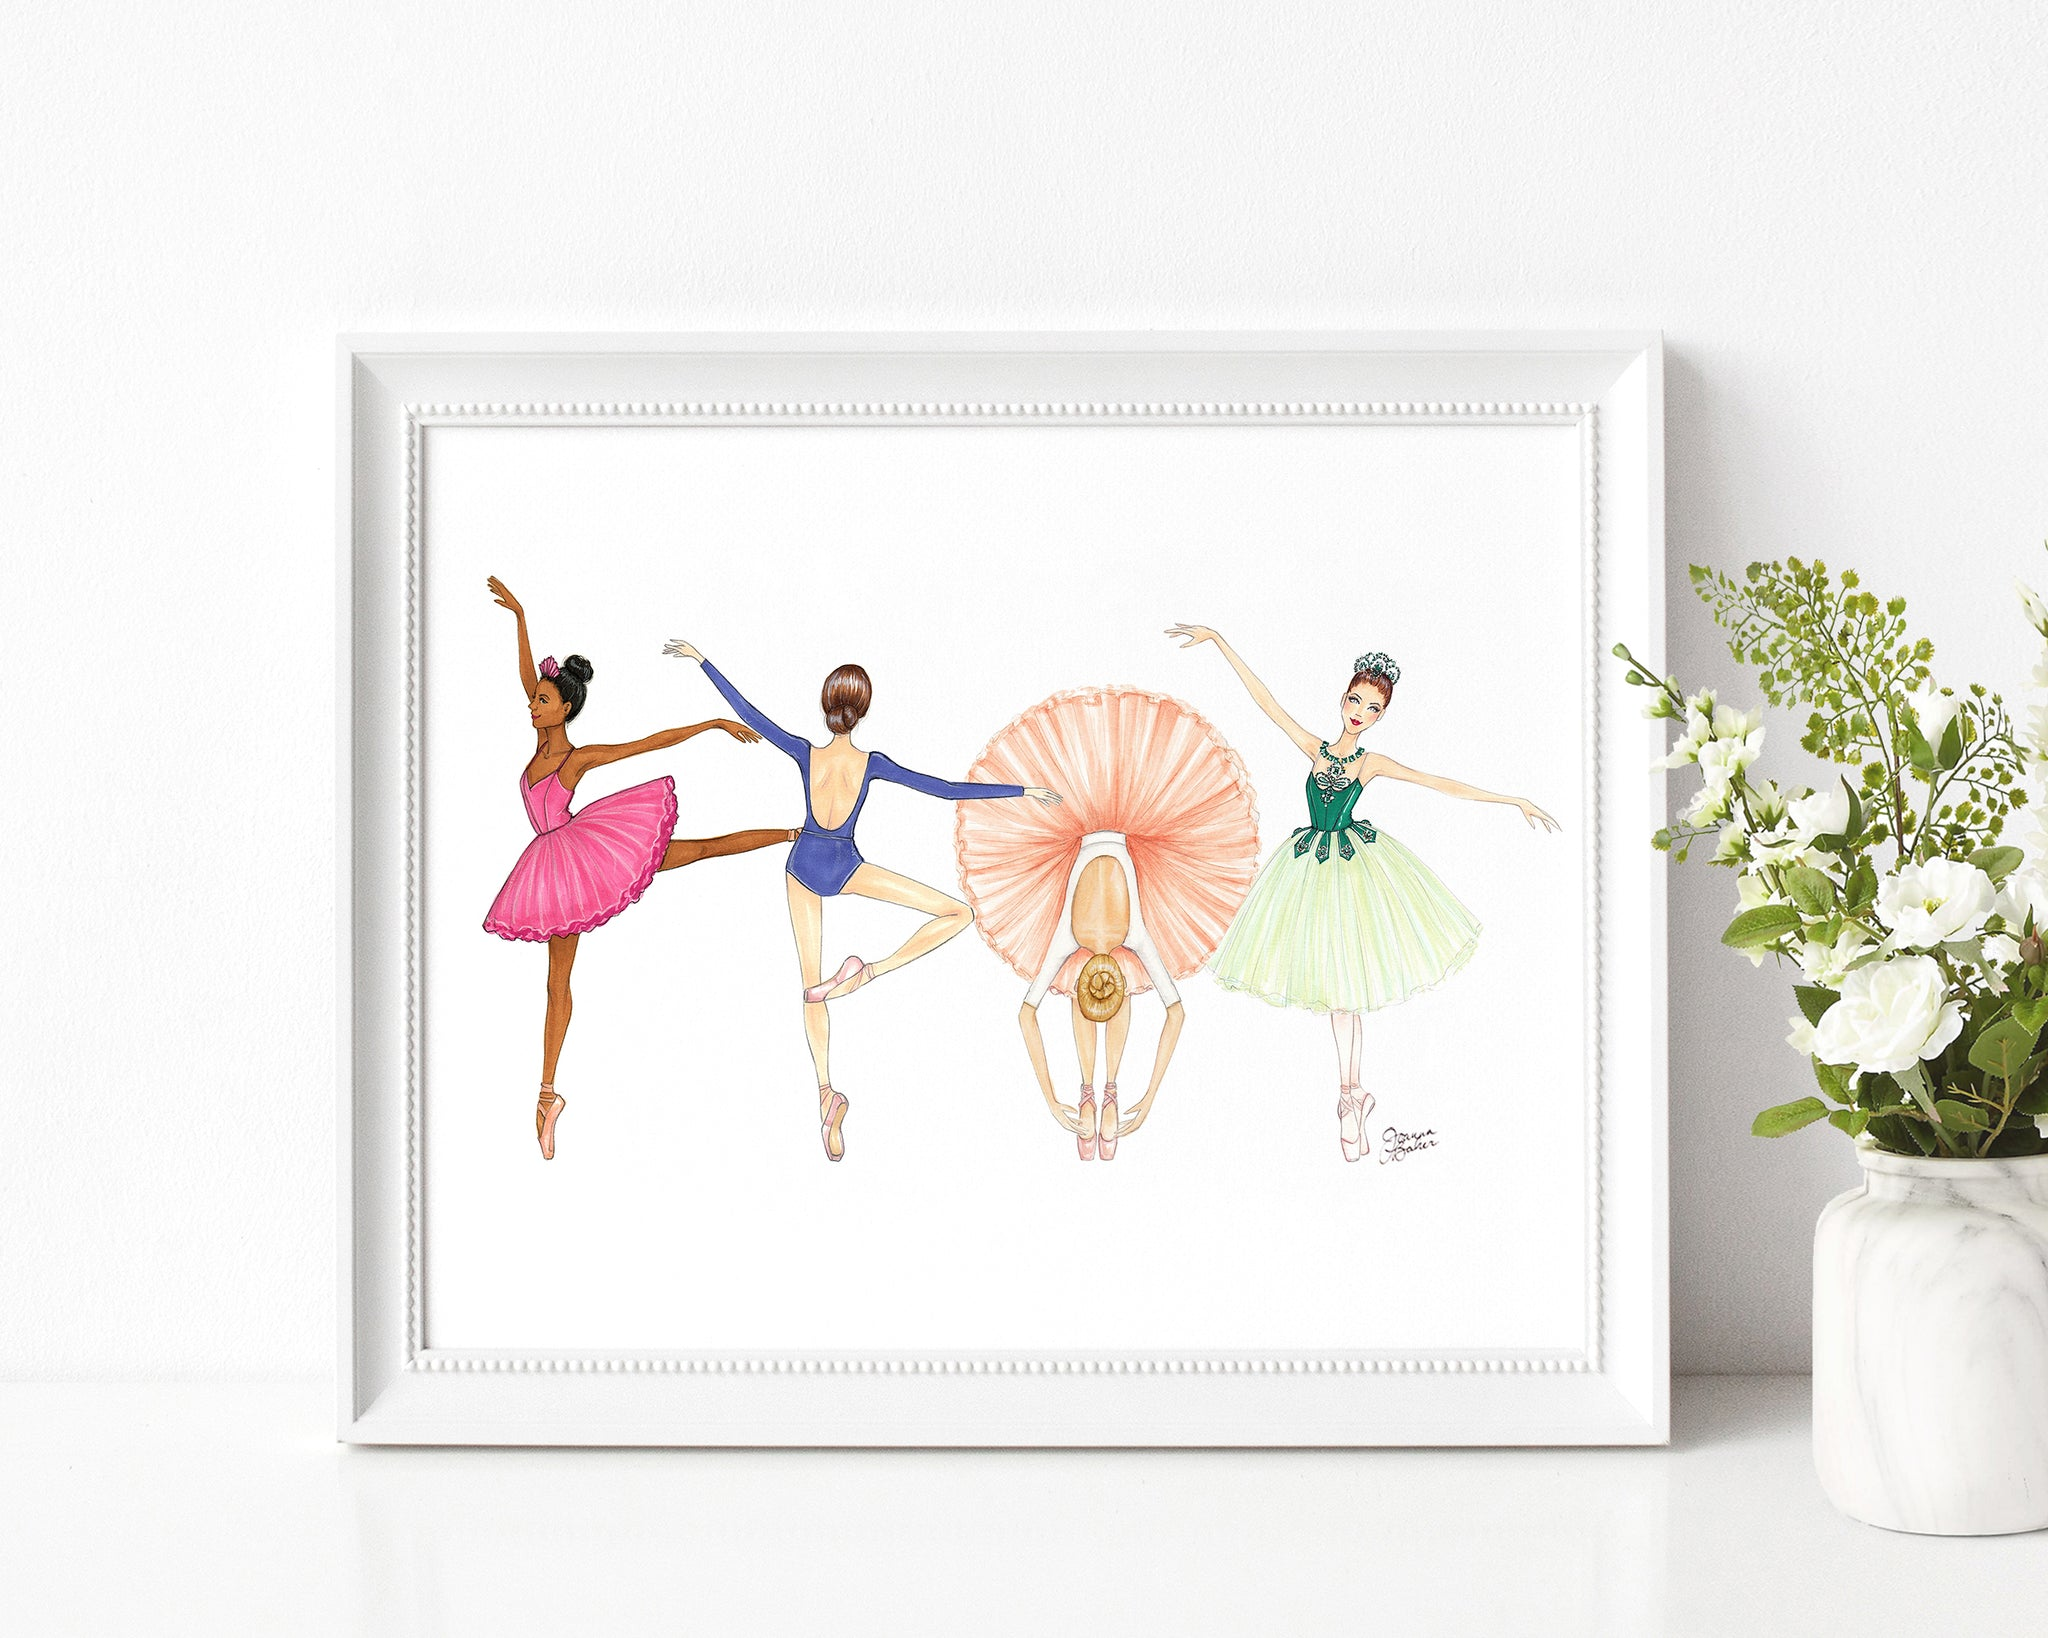 Ballerina Besties Fashion Illustration Art Print